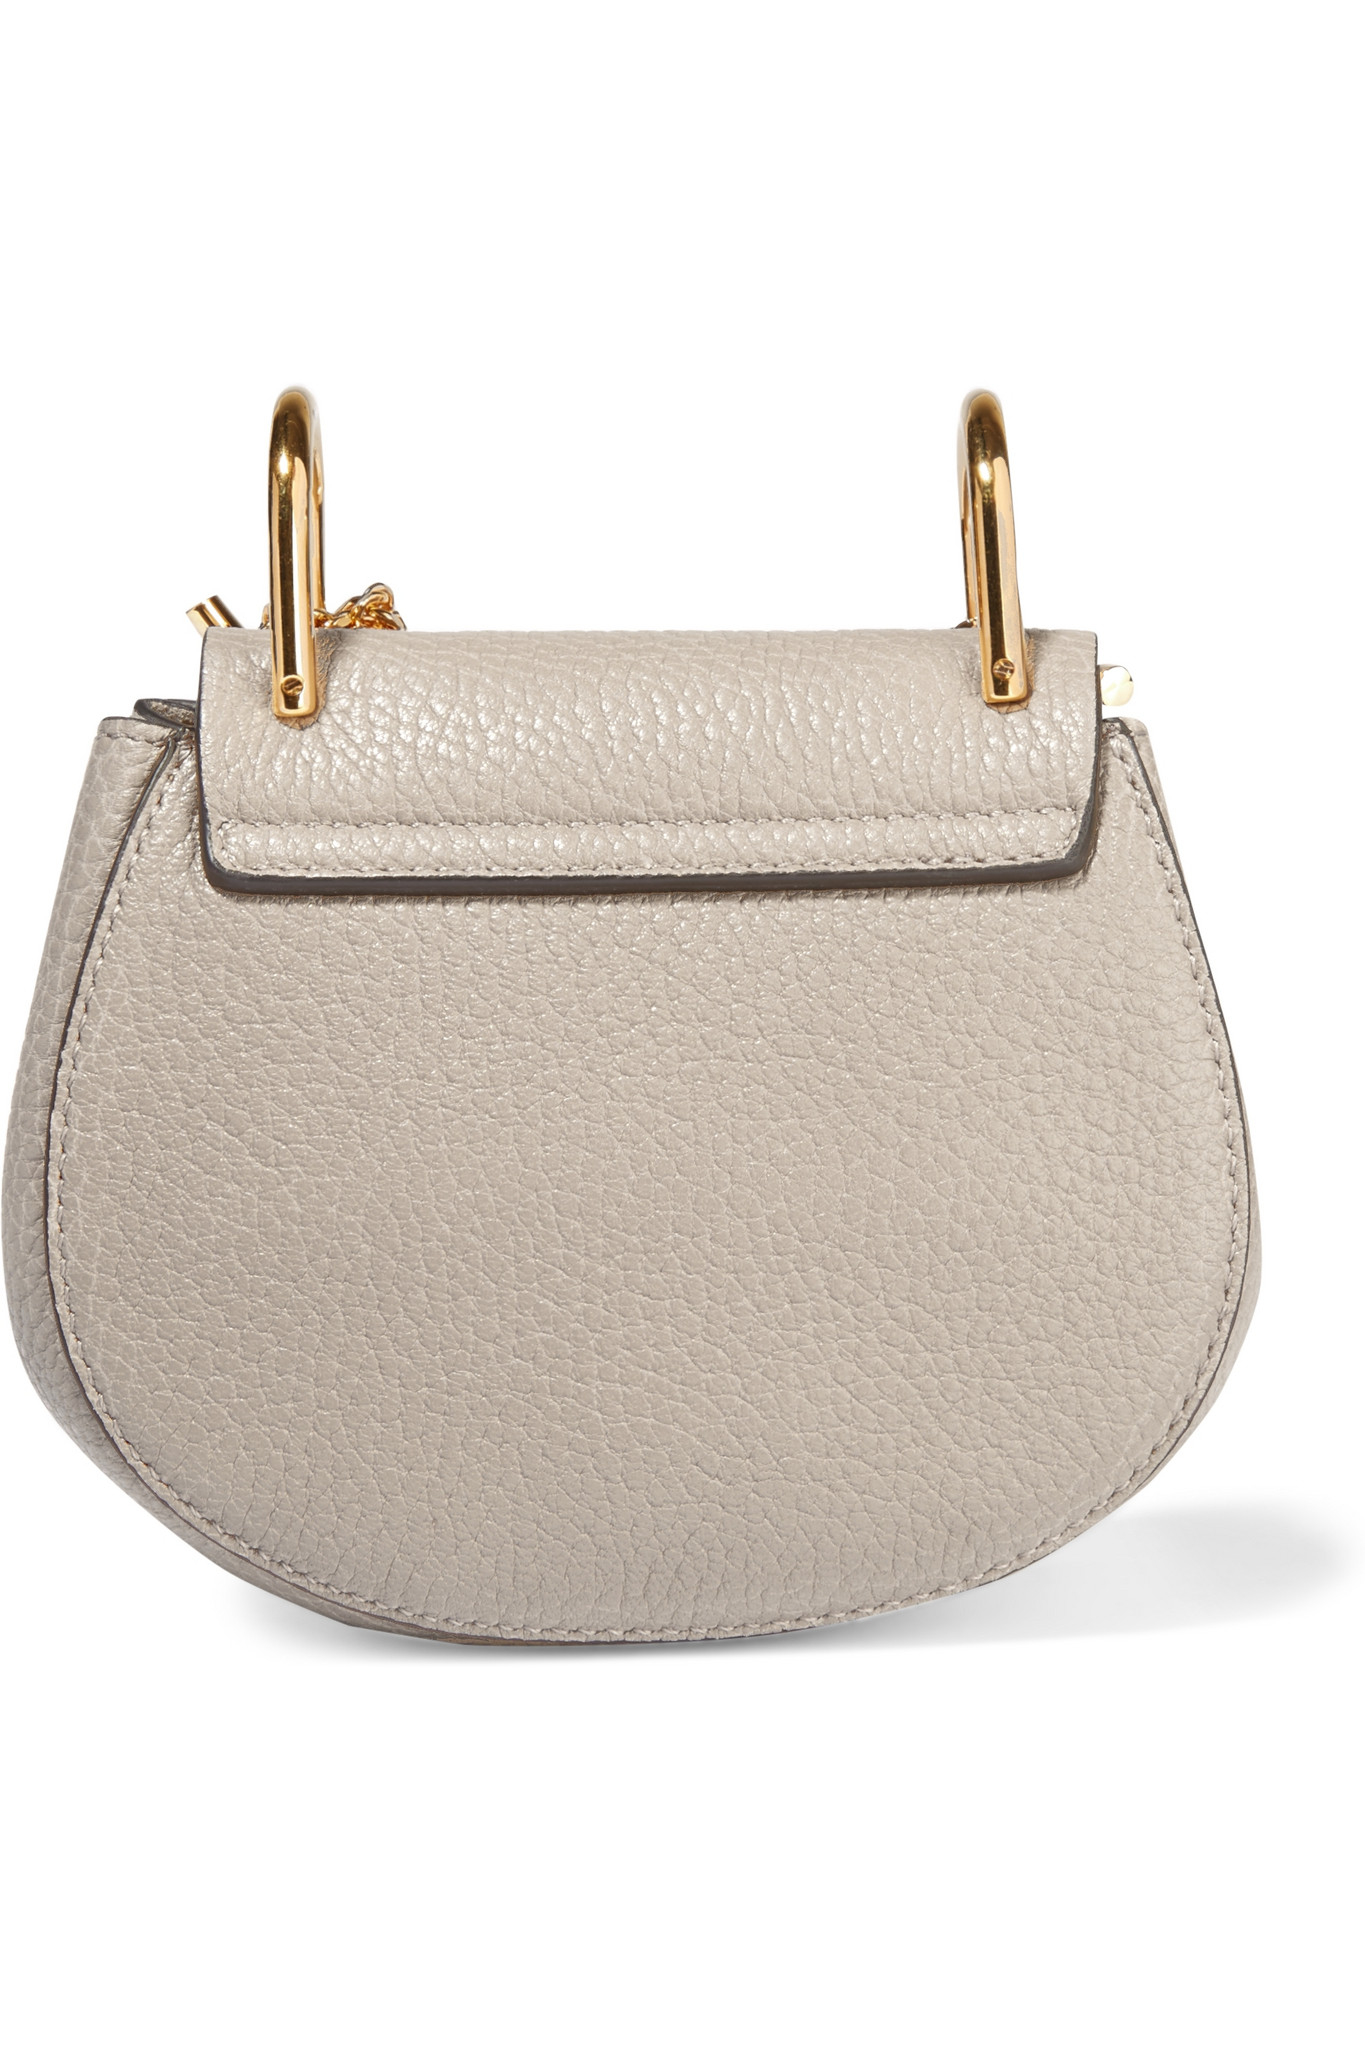 chloe bag online shop - chloe hayley nano textured-leather shoulder bag, discount chloe ...